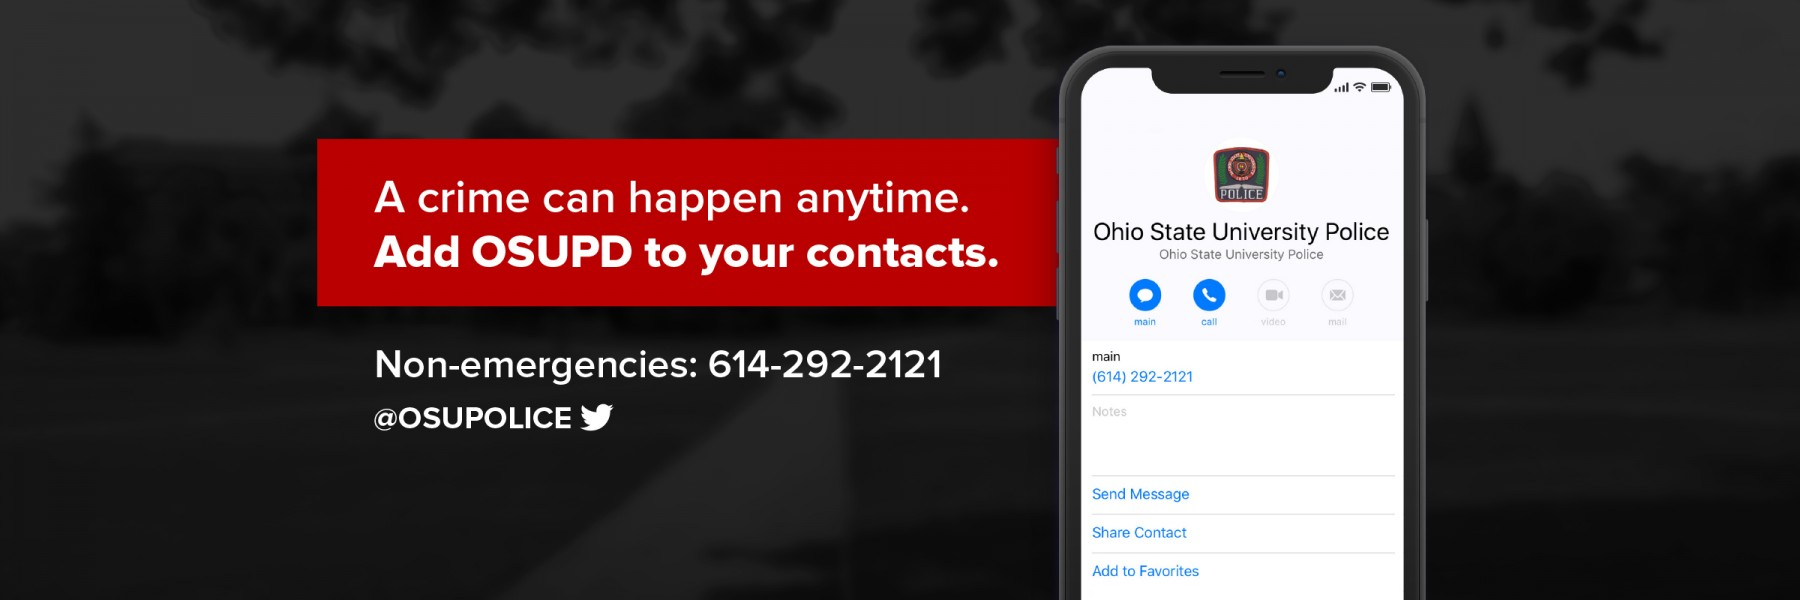 banner image with a cell phone showing the Ohio State University Police as a contact, and a sign that says crime can happen any time, add OSUPD to your contacts.